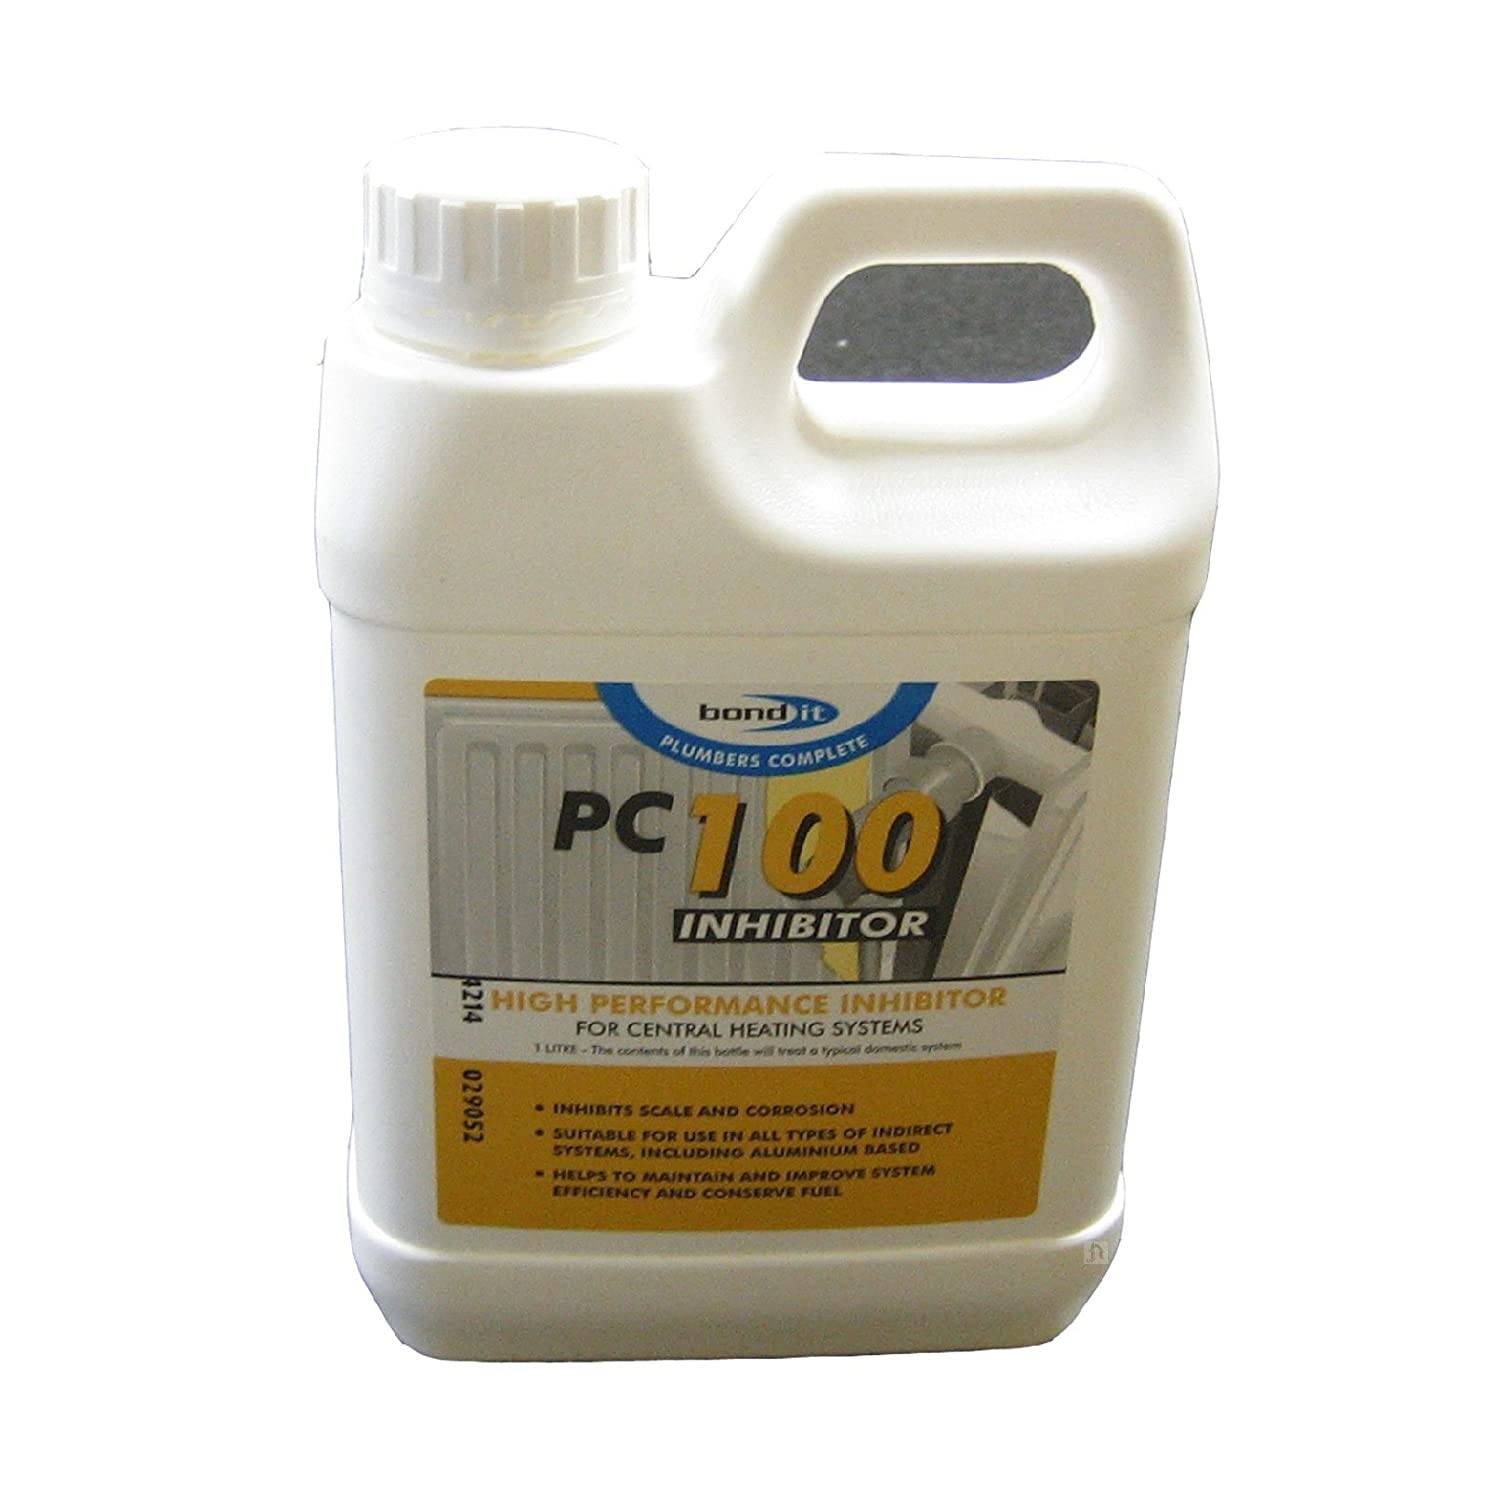 Central Heating System Inhibitor Bond-it PC100 1 Litre Stops Scale ...